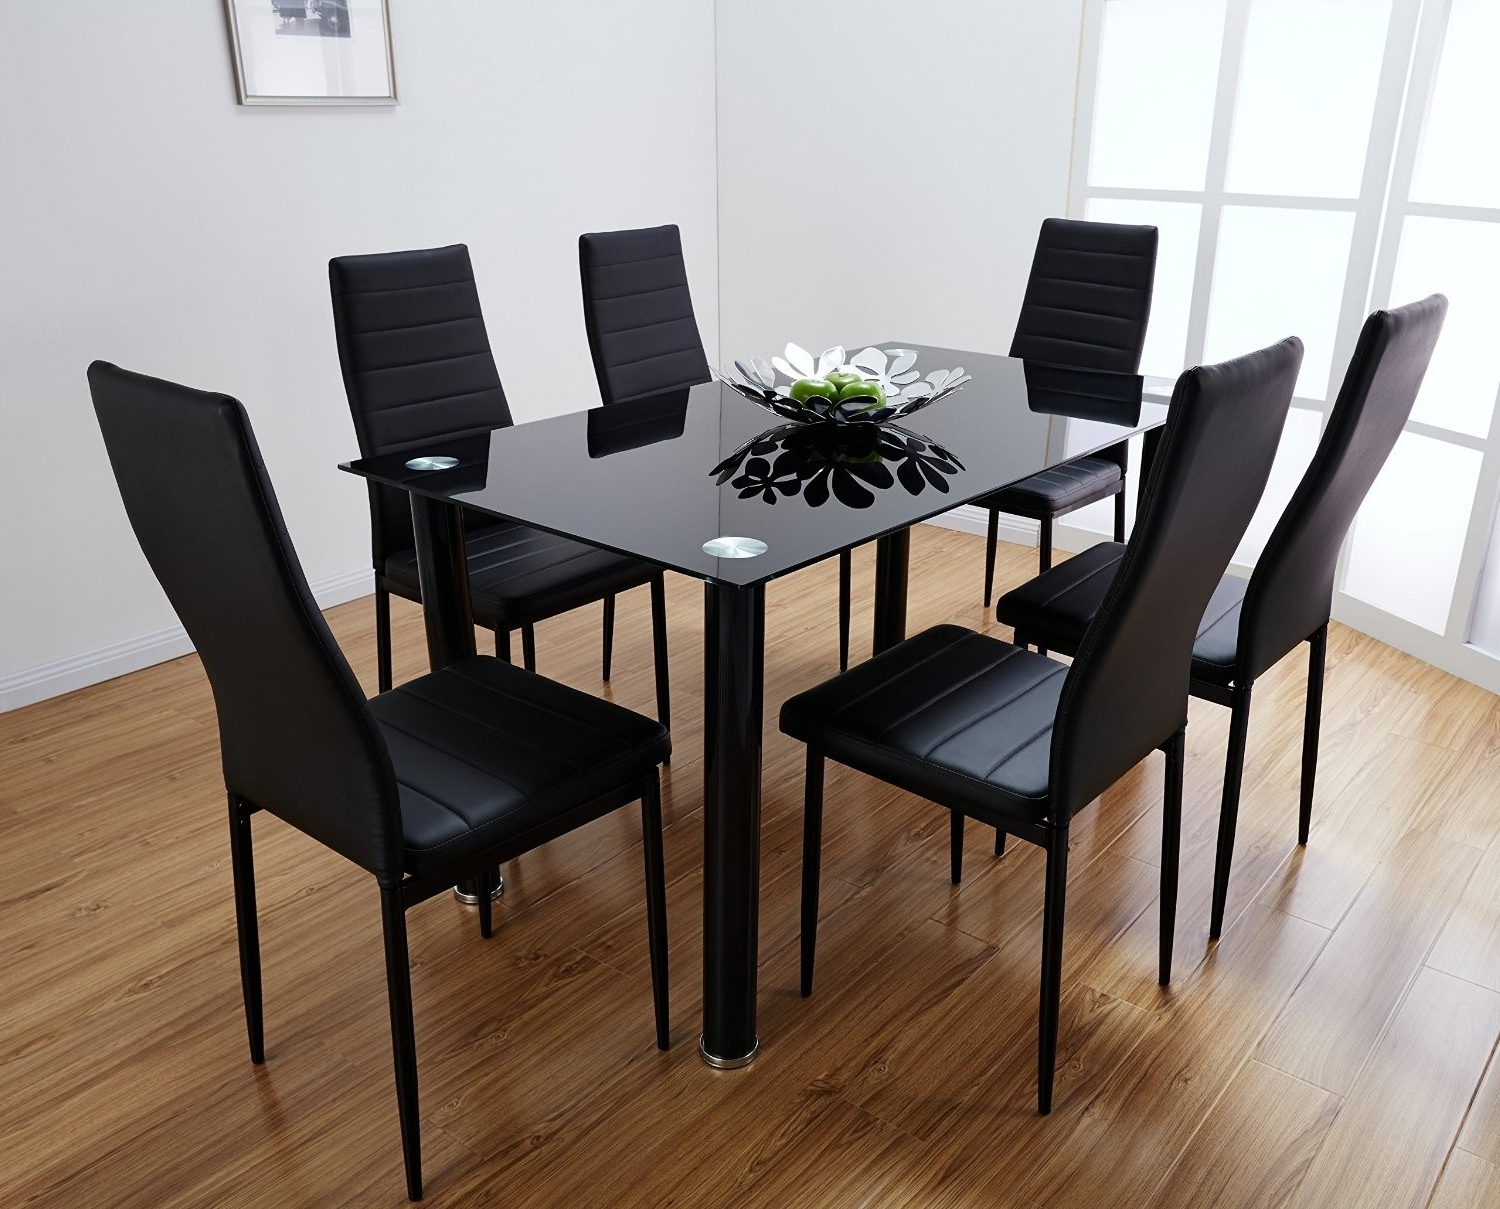 Black Glass Dining Table Decorating Ideas With 4 Chairs – Home Decor With Newest Dining Tables Black Glass (Gallery 4 of 25)